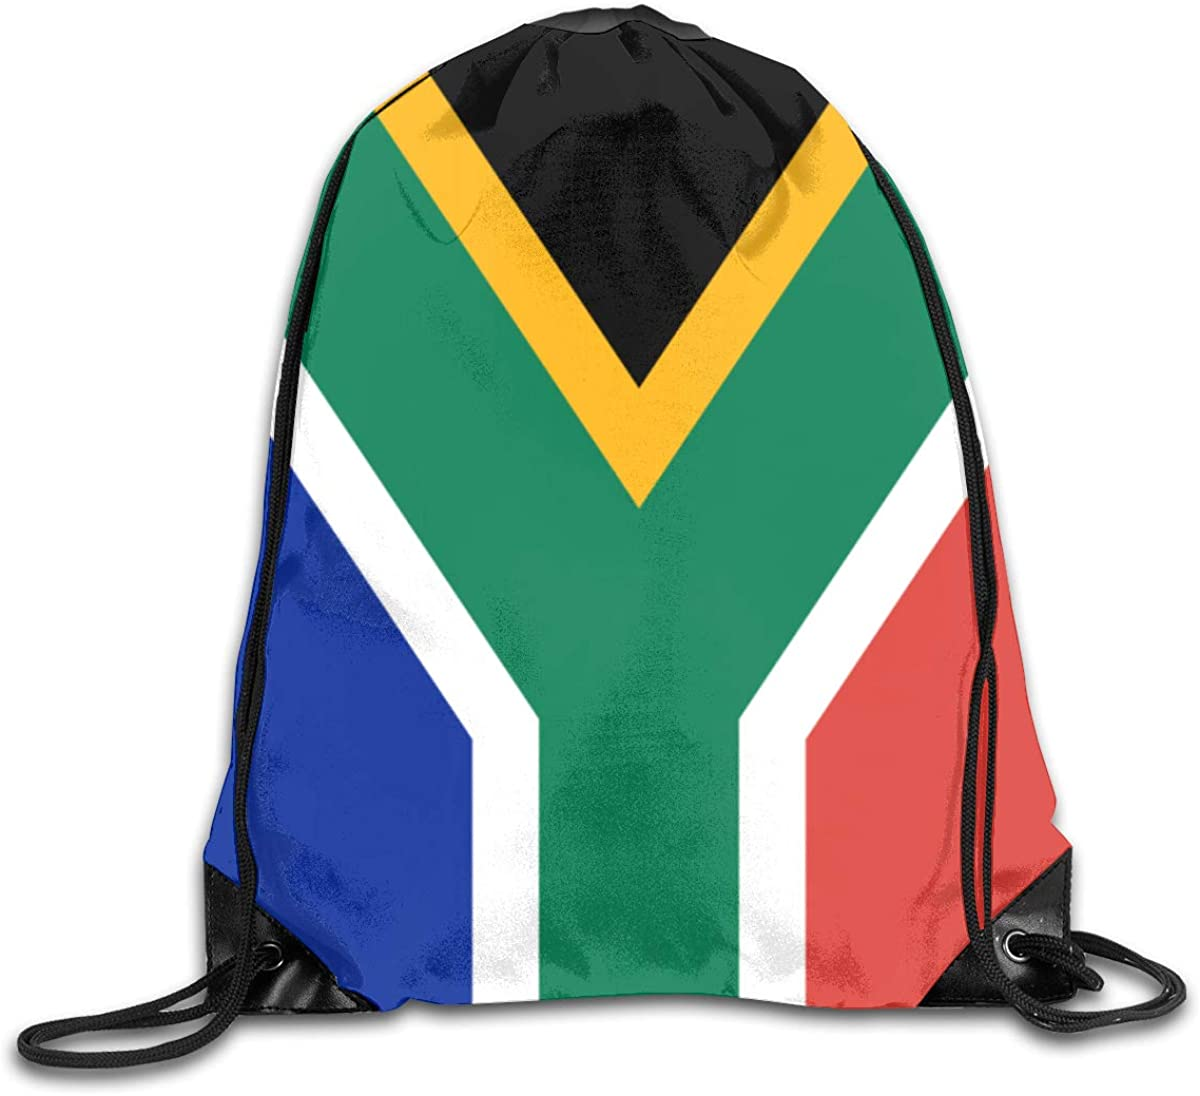 South-African-flag Beam Mouth Backpack Pull Rope Shoulder Bag Outdoor Sports Leisure Bag